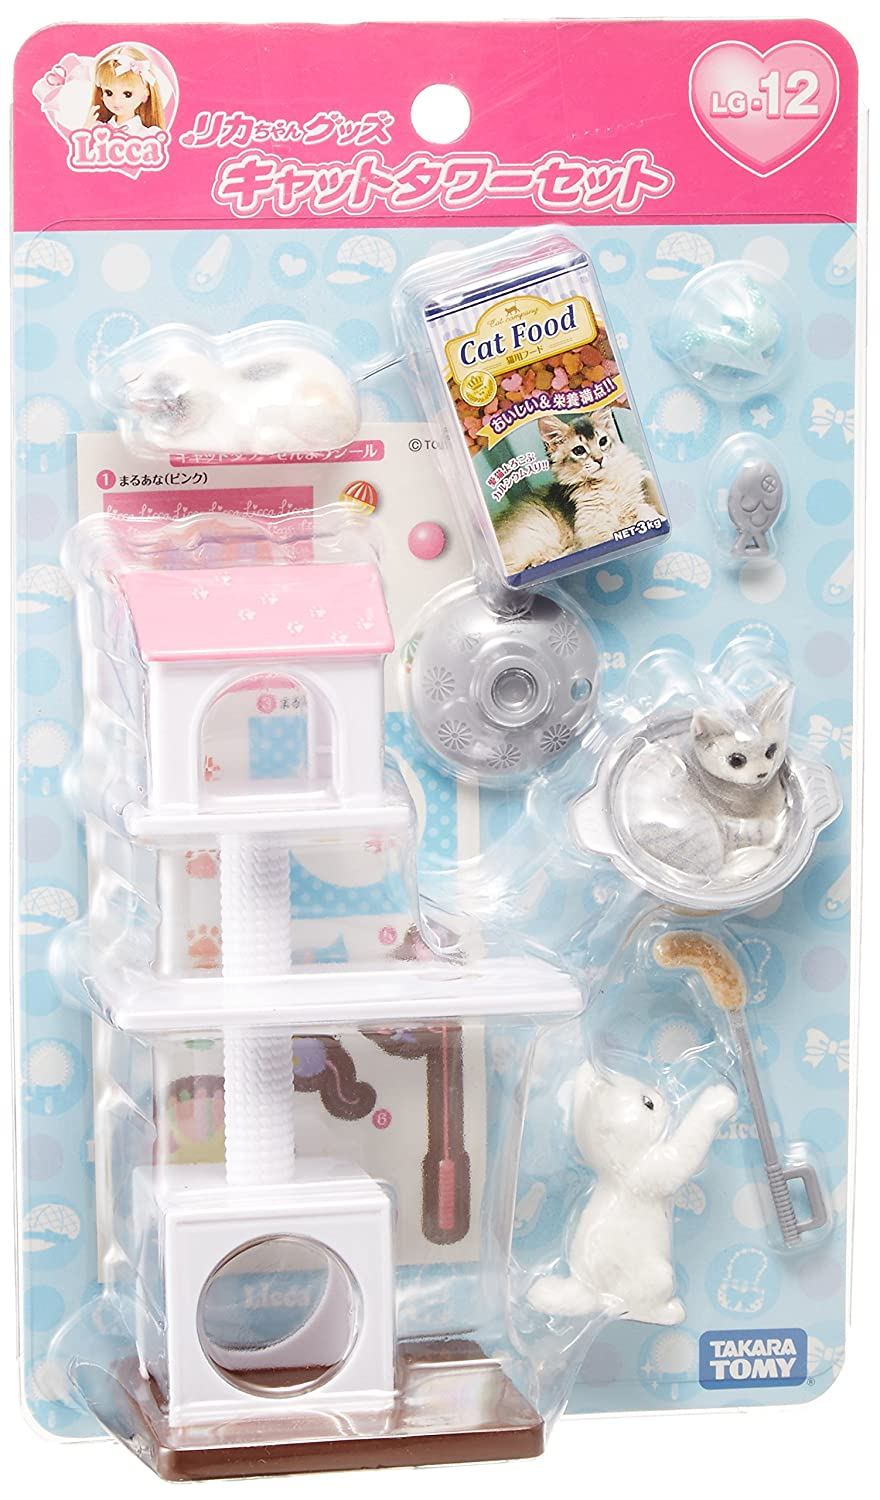 doll is not included Takara Tomy Licca chan busy pet set